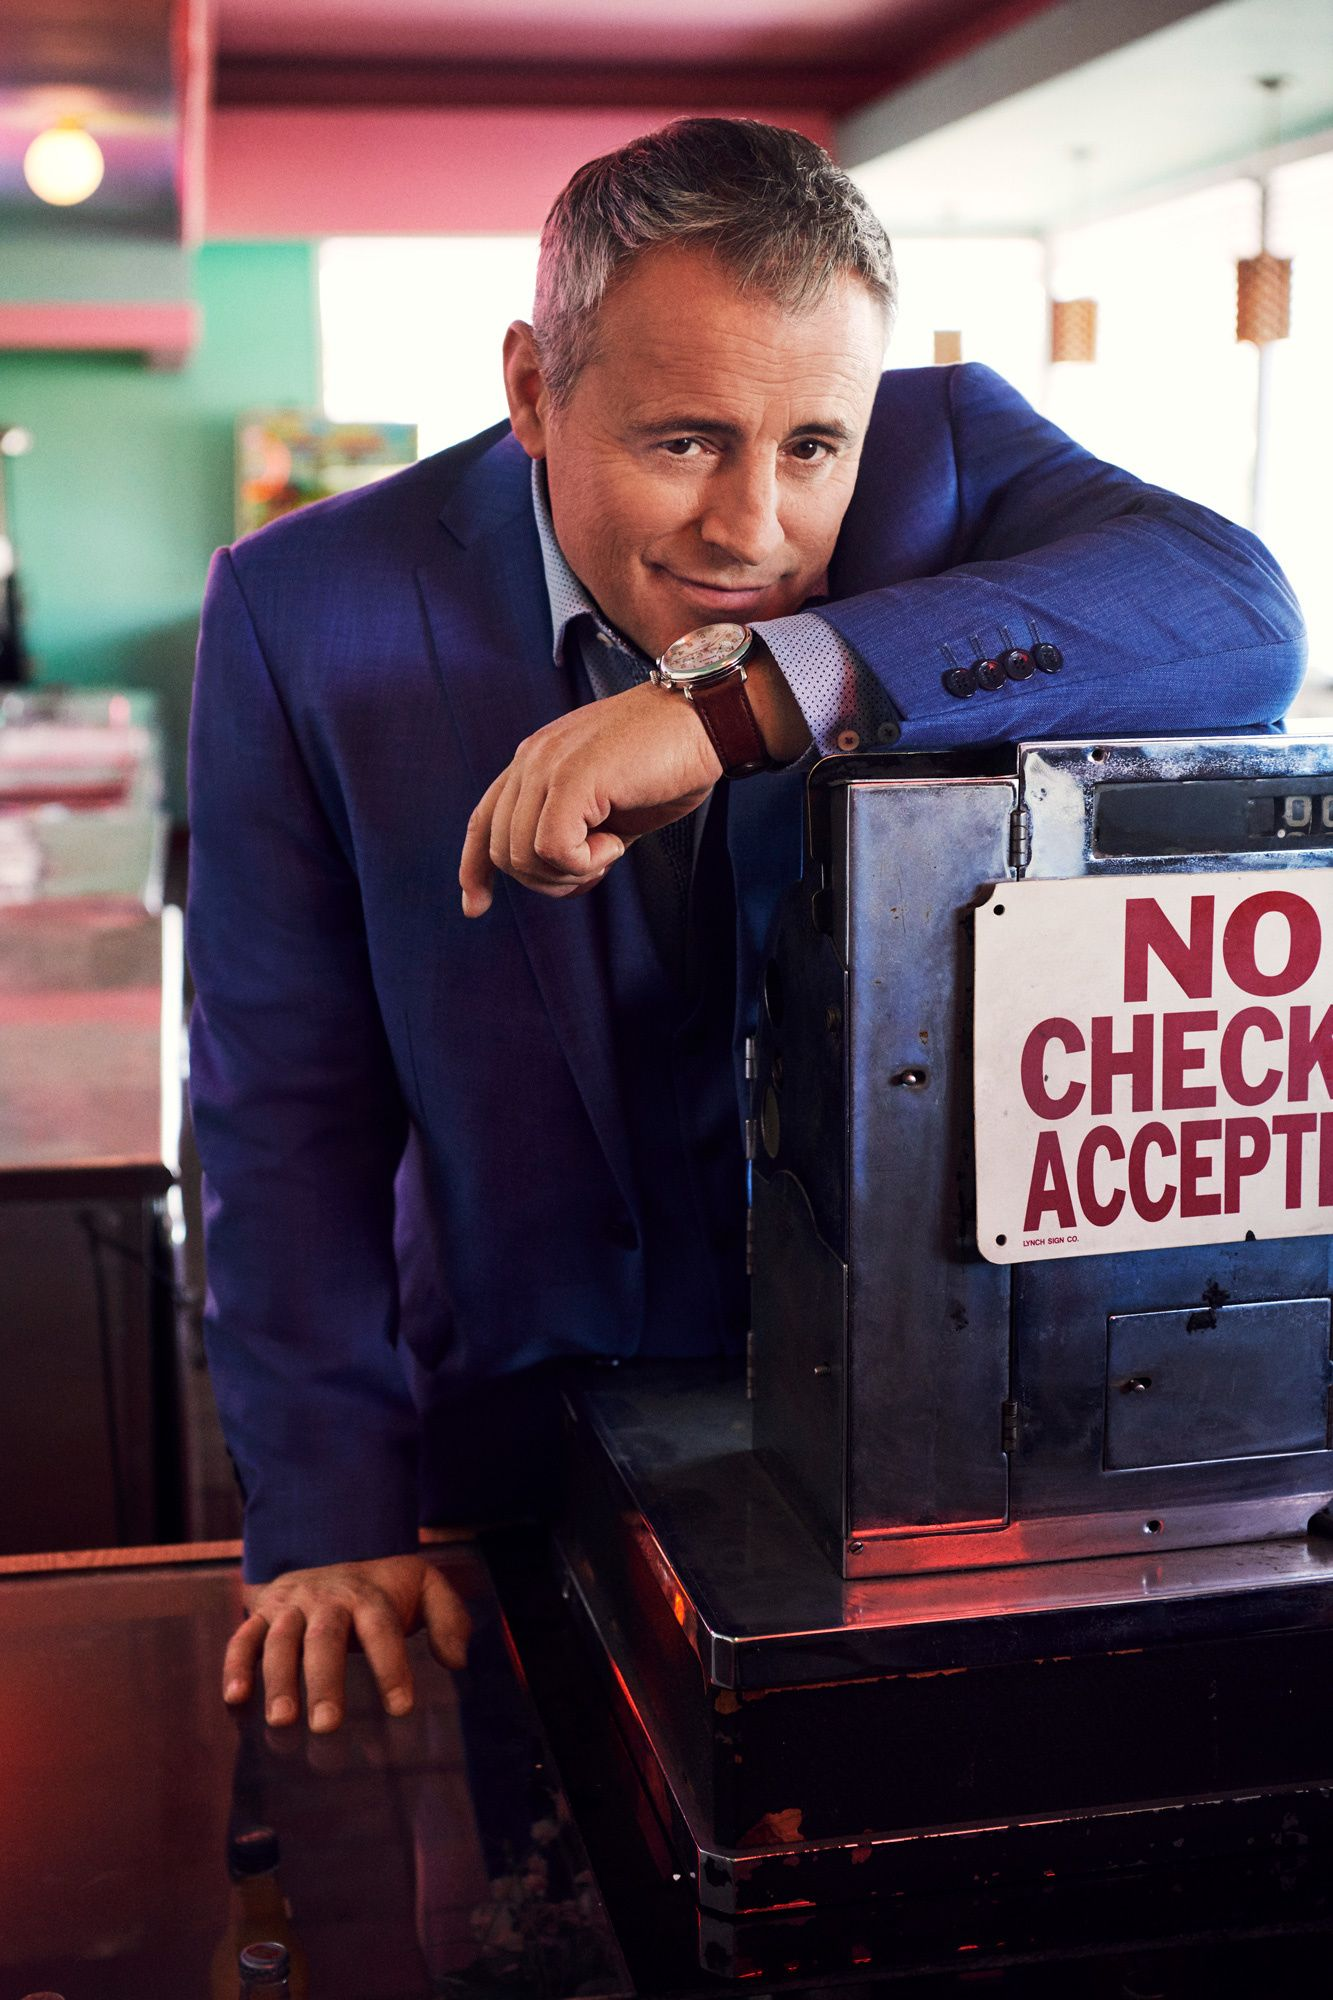 Matt LeBlanc at a vintage cash register looking into the camera wearing a blue suit.